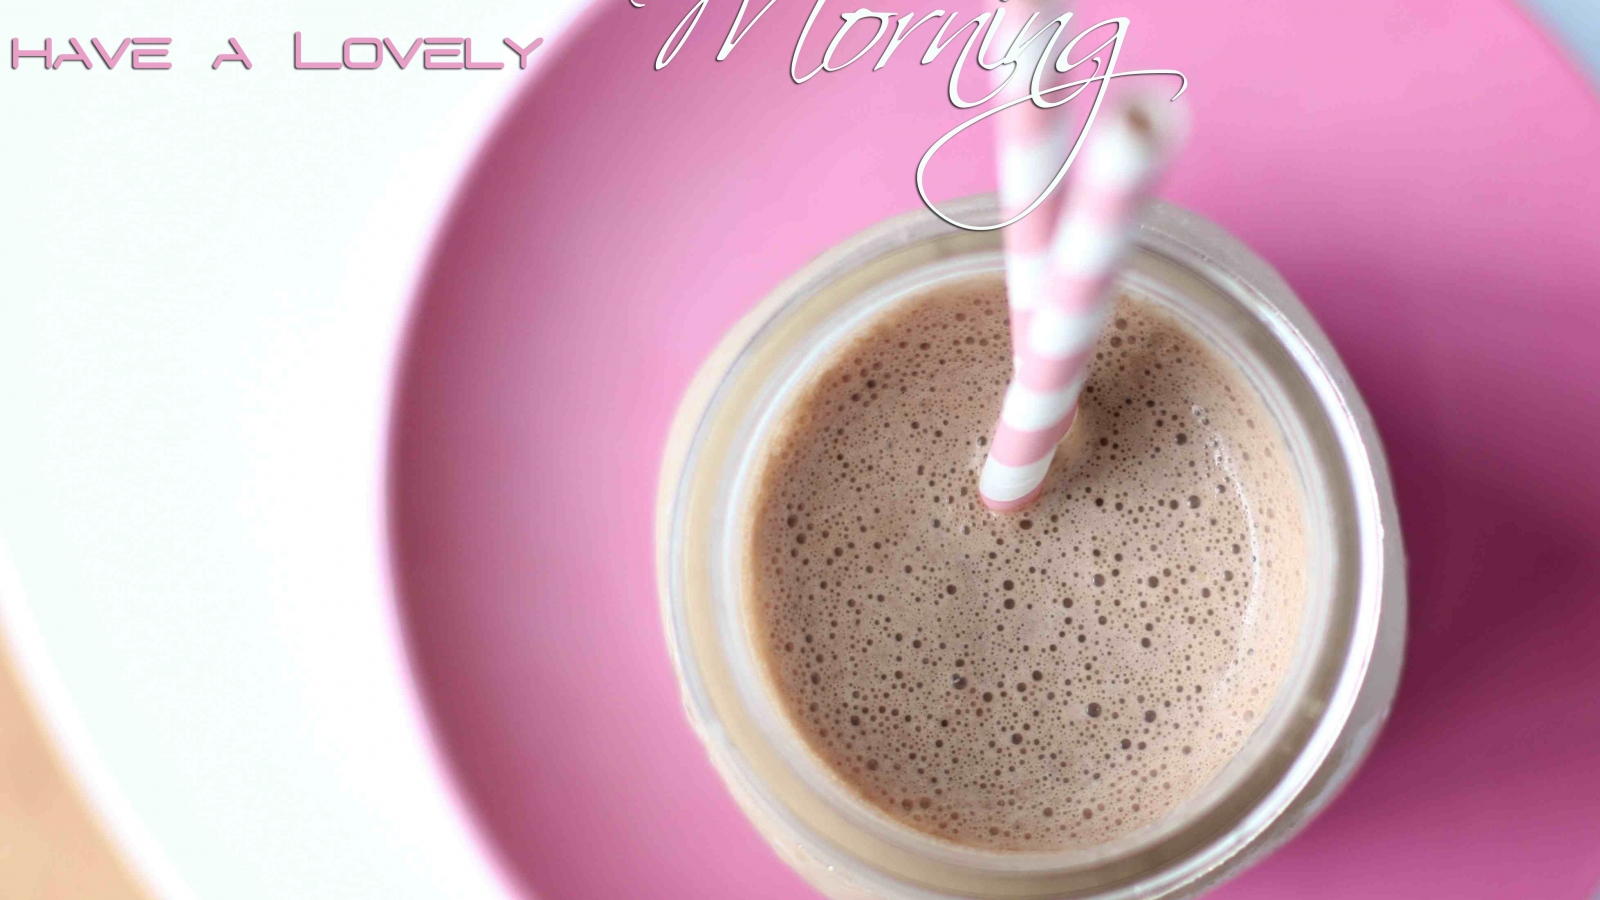 Lovely Good Morning Wishes Hd Wallpaper